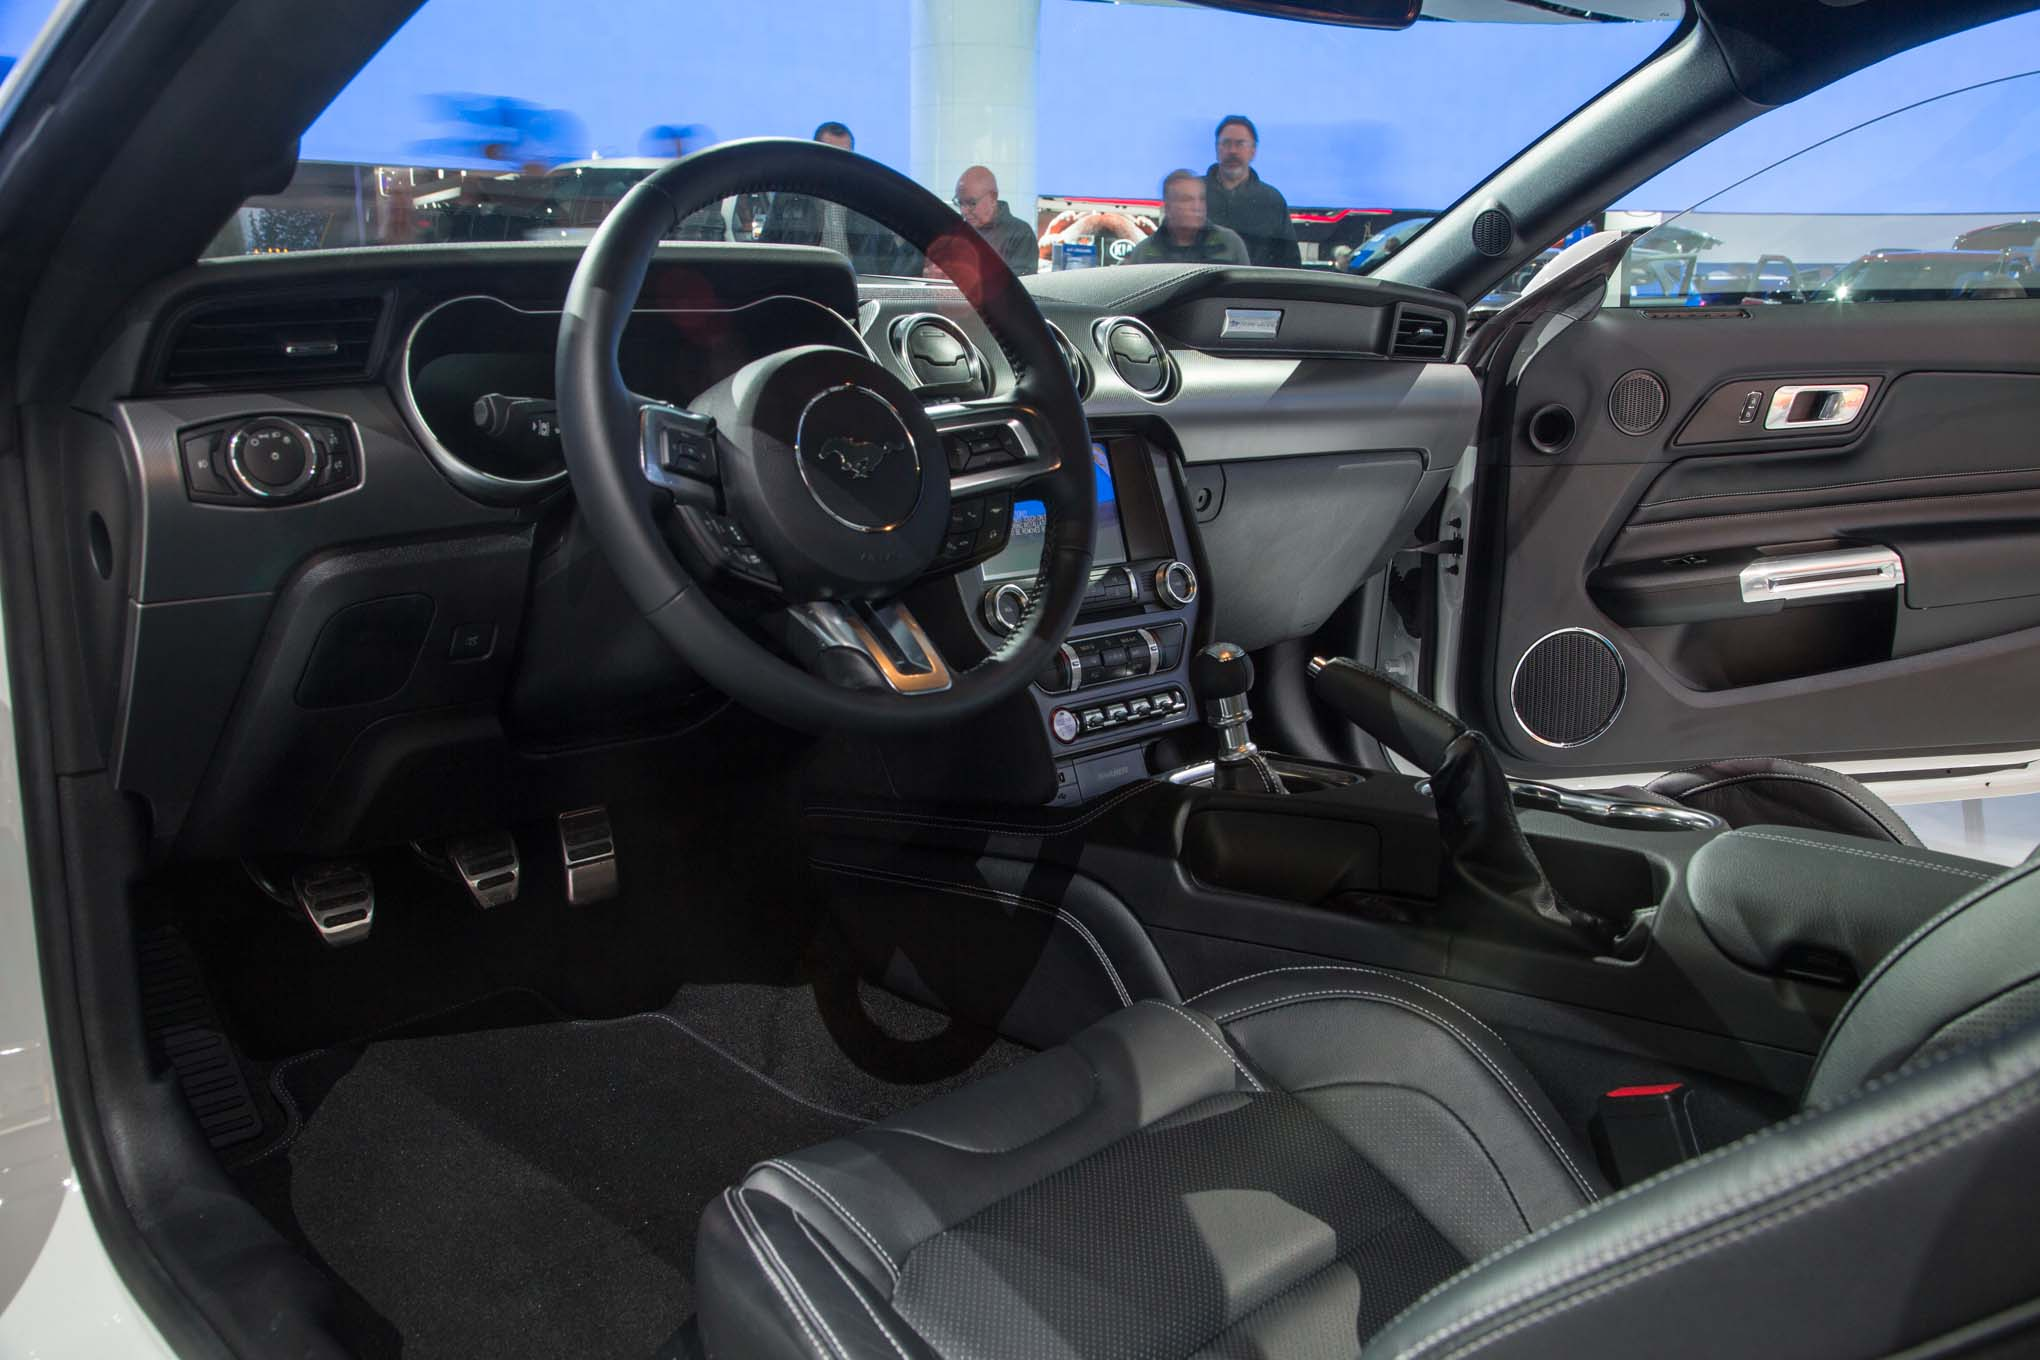 2018-Ford-Mustang-GT-interior